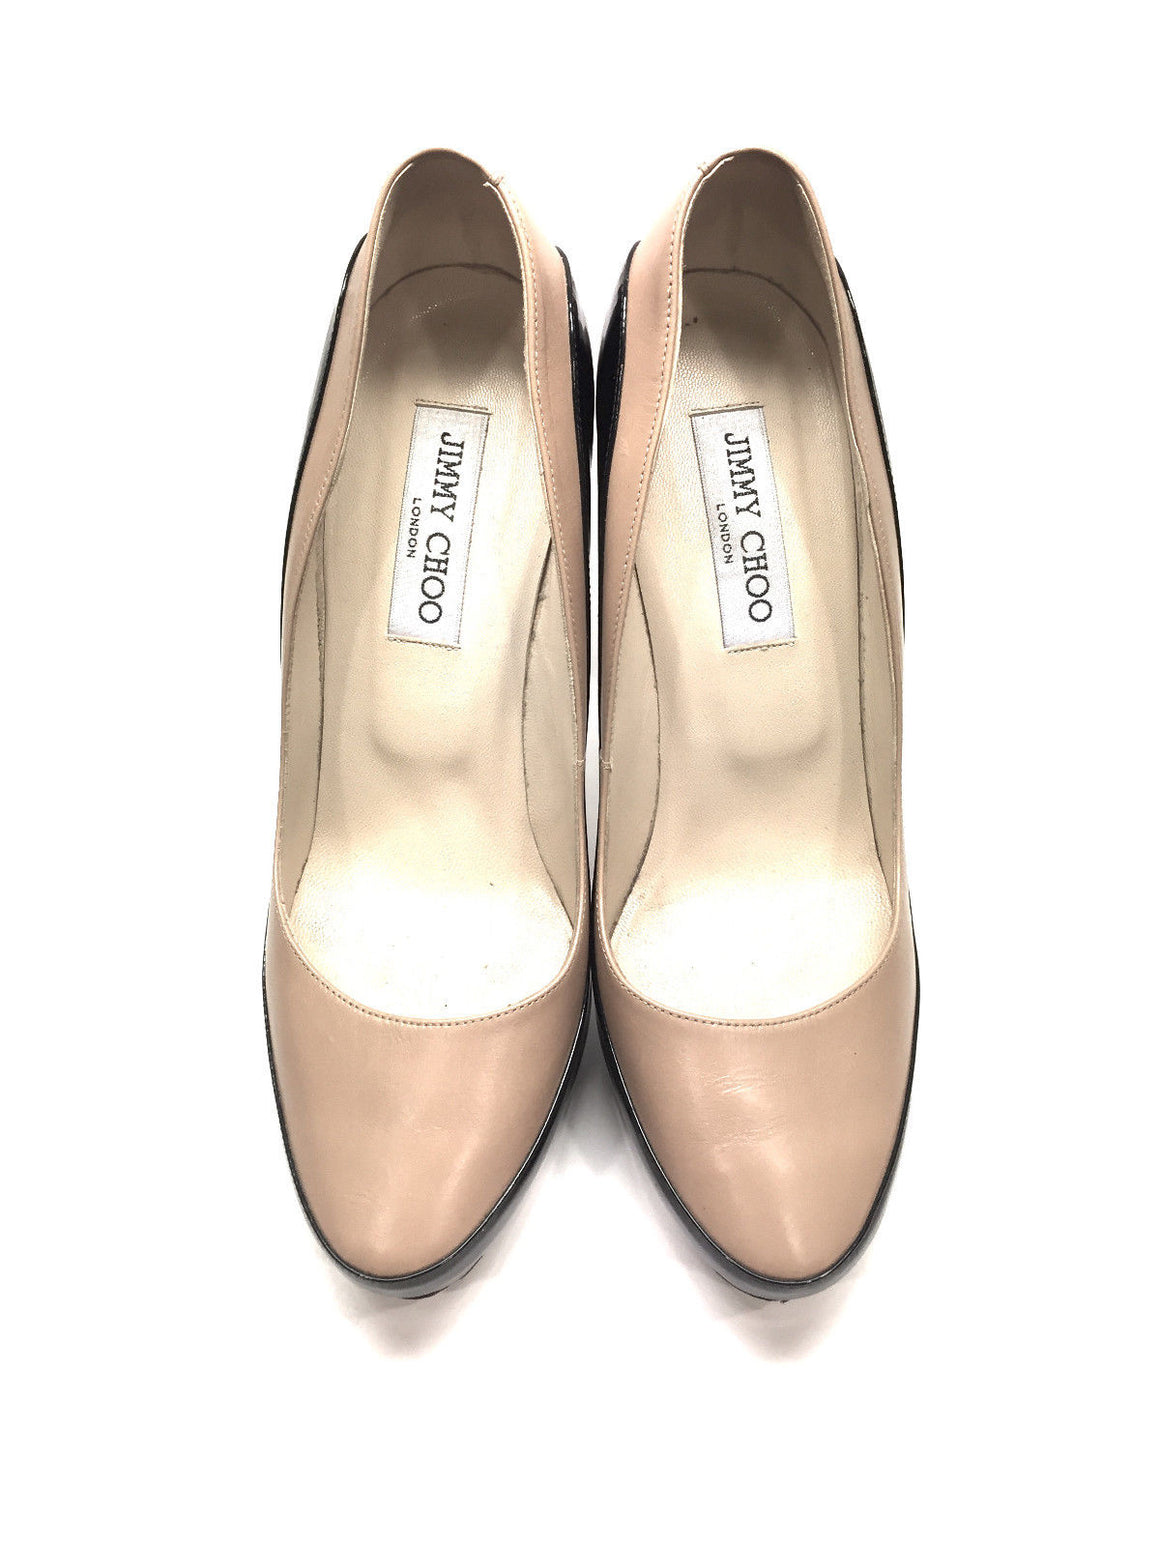 bisbiz.com JIMMY CHOO  Beige Leather/Black Patent Stiletto Heel Platform Pumps  Size: IT 39 / US8.5 - Bis Luxury Resale